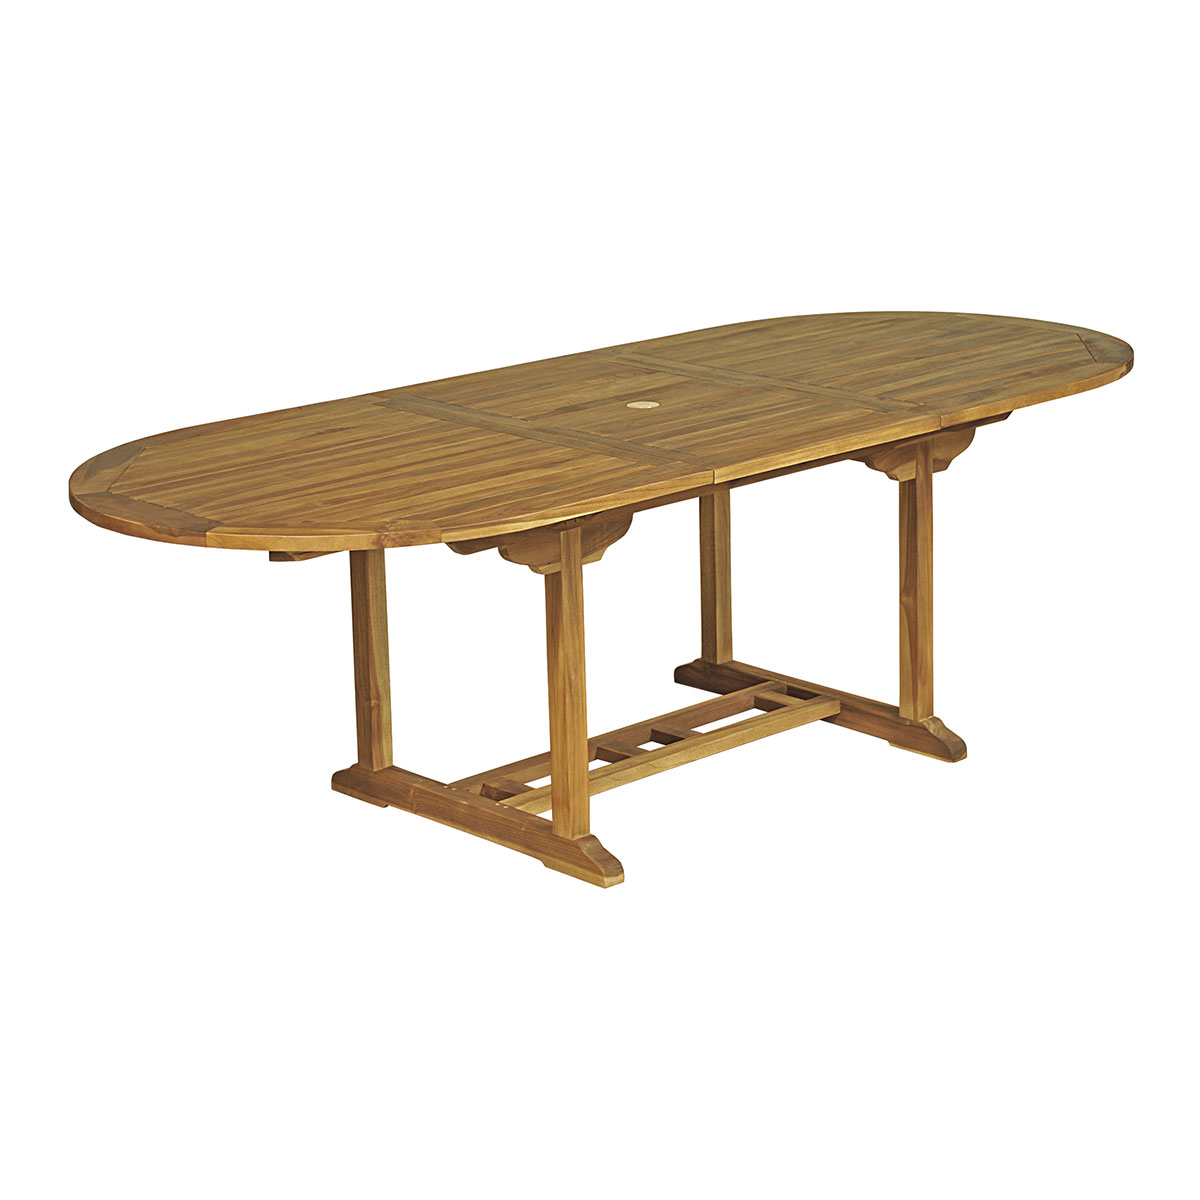 Table ovale Baya 180/240 x 100 x 75 cm en Teck Huilé 6/8 places